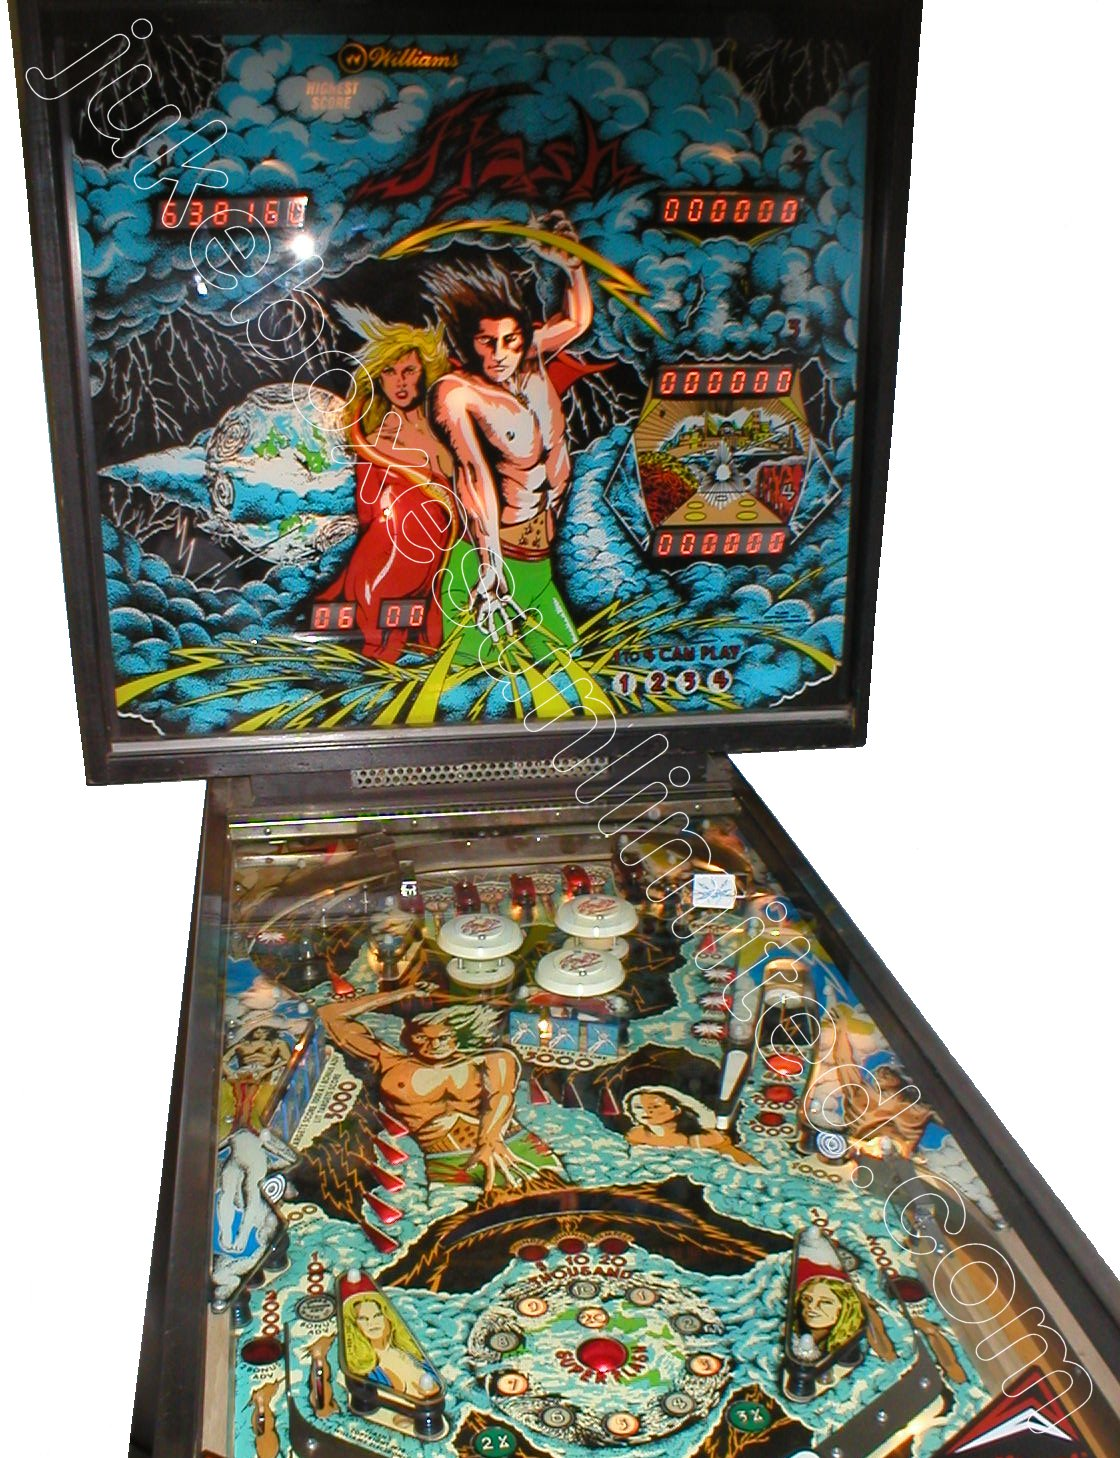 1979 Williams Quot Flash Quot Pinball For Sale